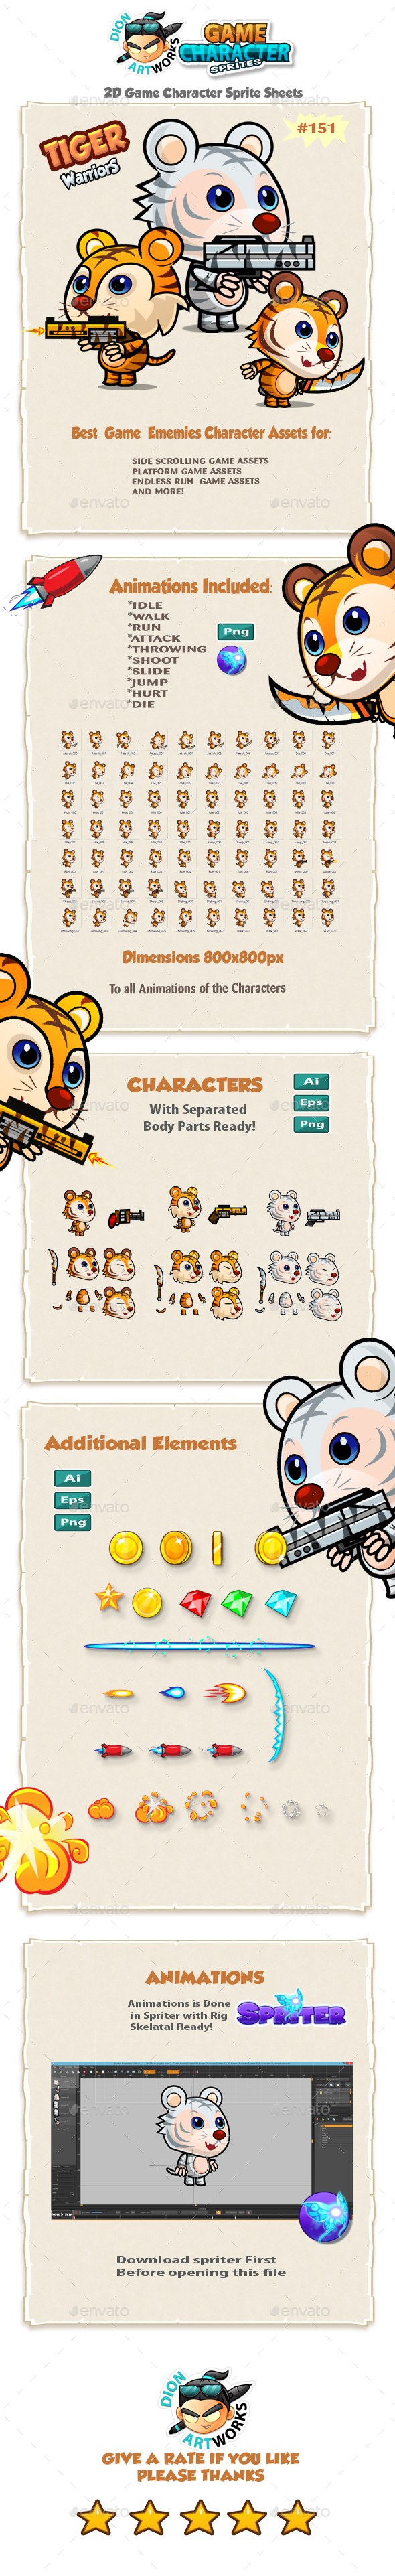 Tiger Warriors 2D Game Character Sprites 151 (Sprites)